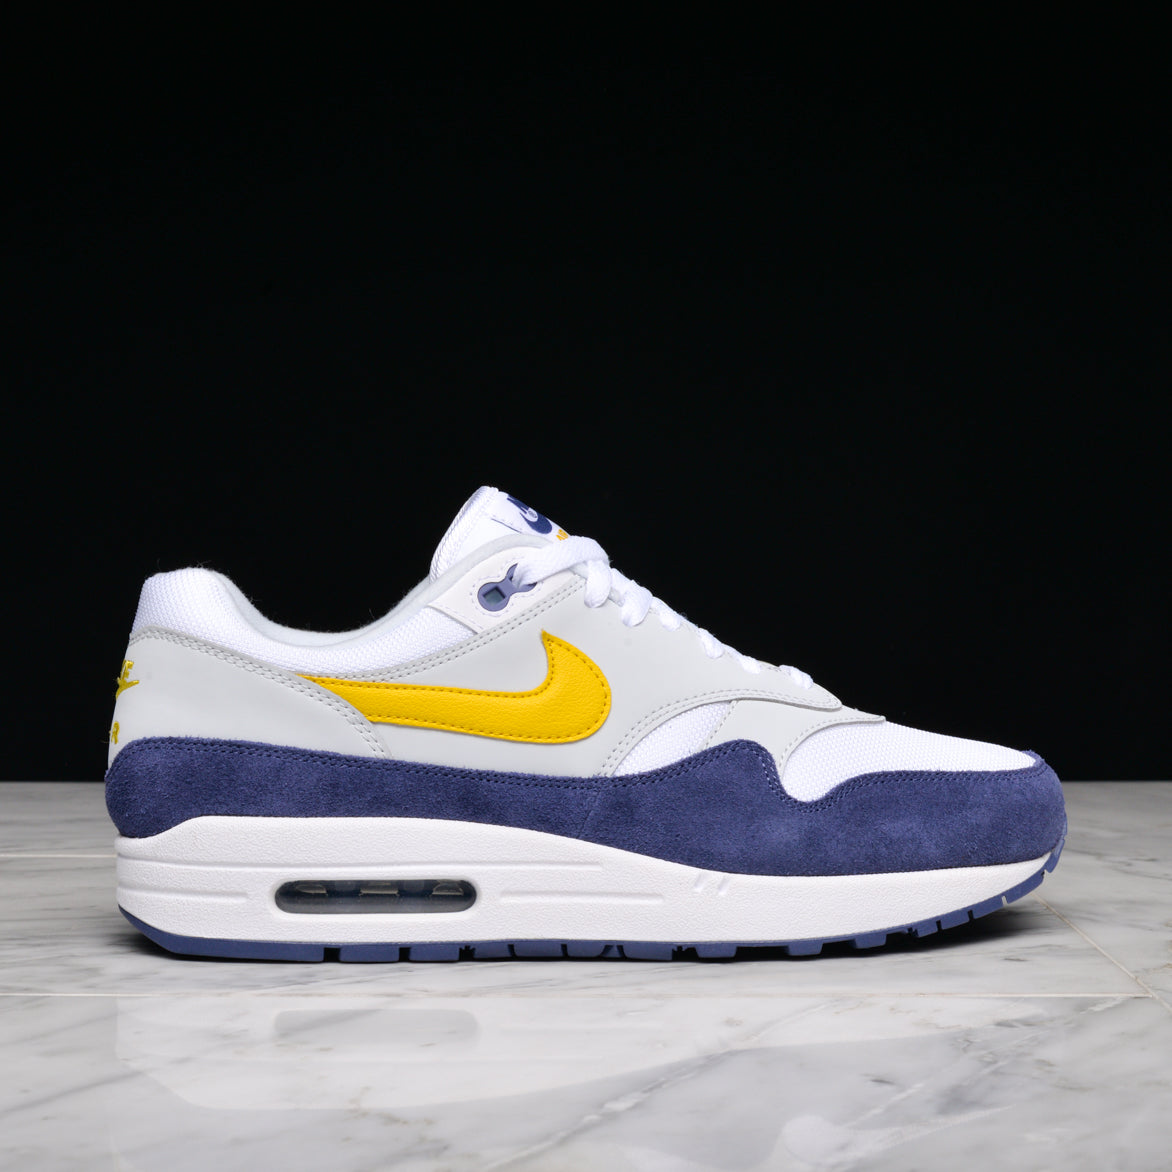 AIR MAX 1 - TOUR YELLOW / BLUE RECALL ...